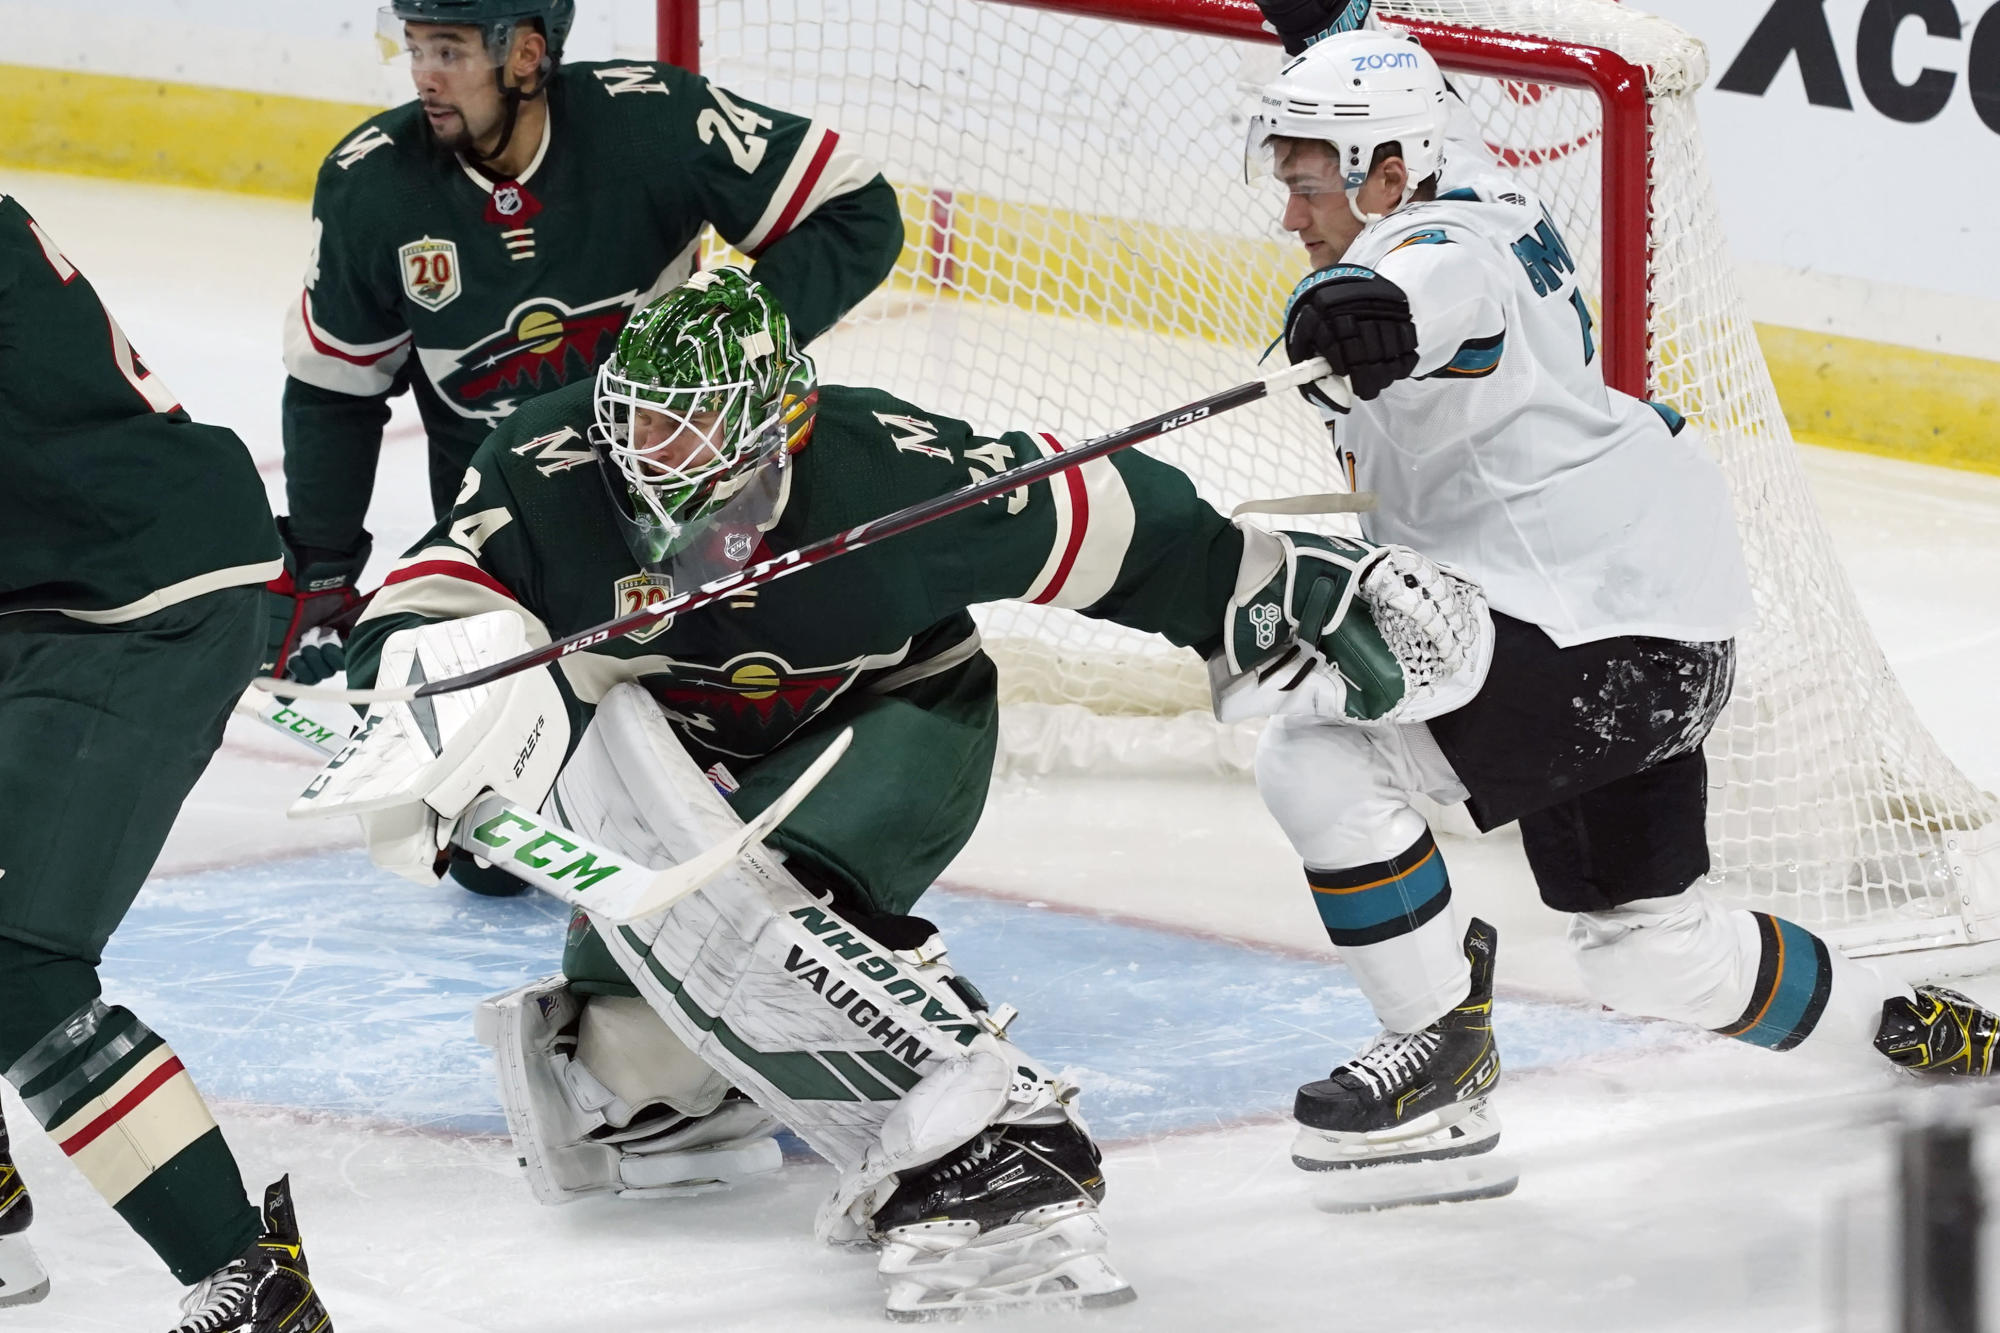 news.yahoo.com: The Latest: Sharks to open home schedule hosting in Arizona